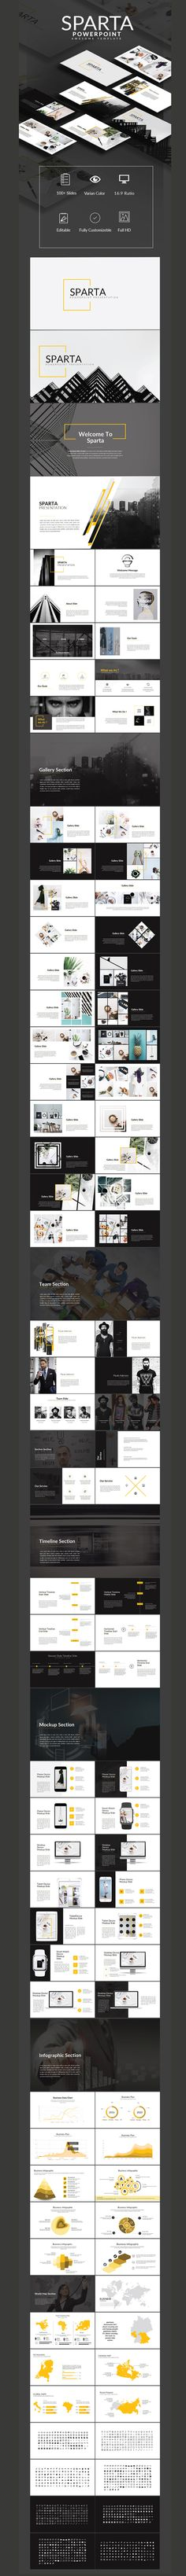 Startup Business Keynote Template Startups, Design and Keys - manual format template